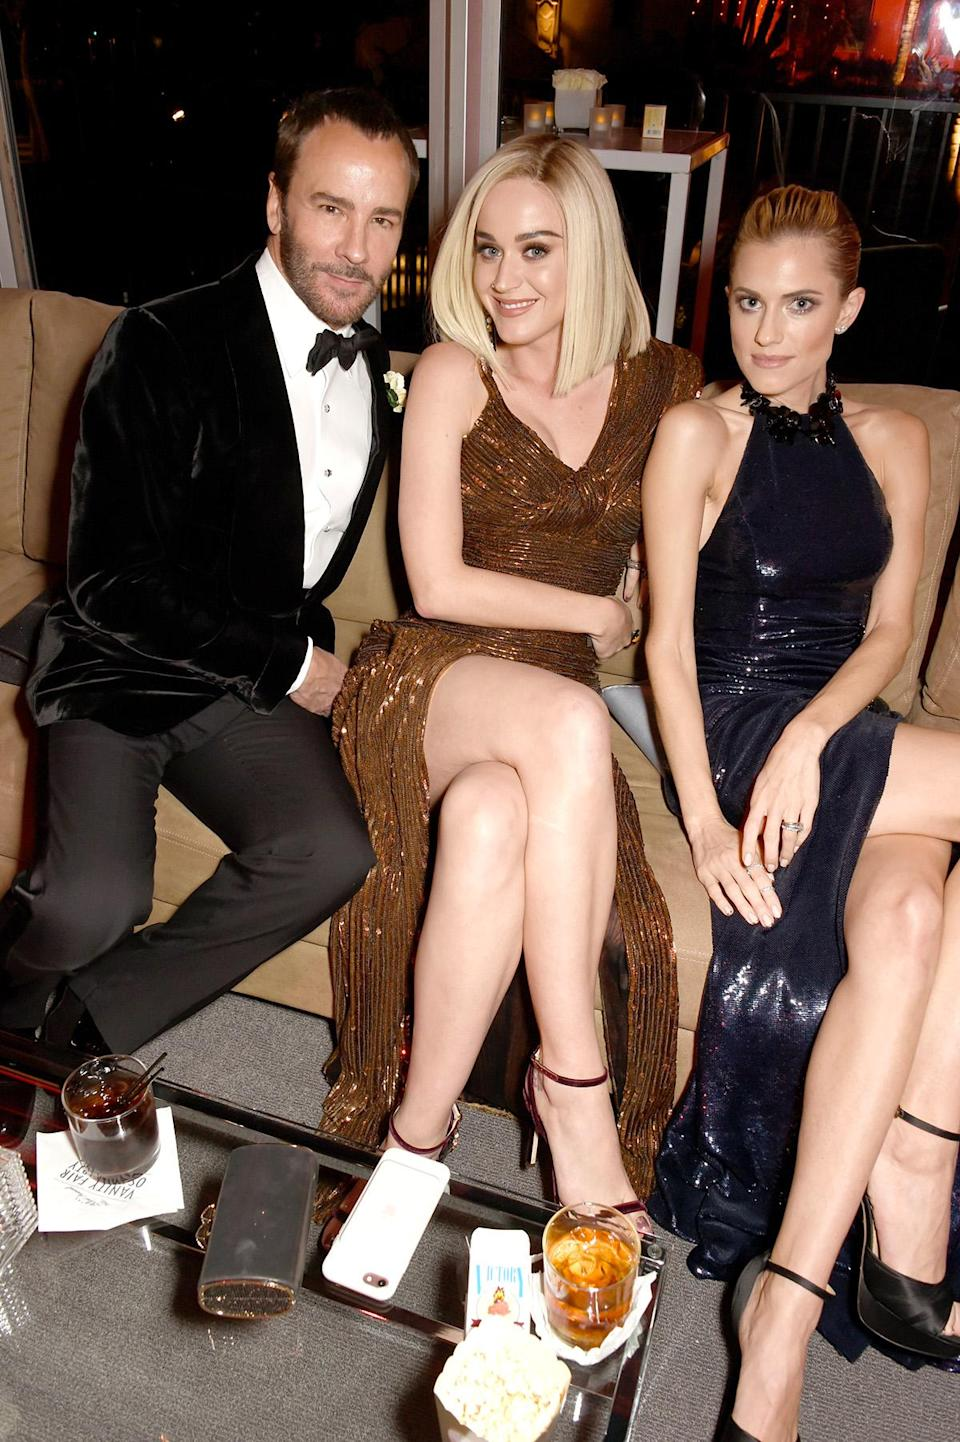 <p>(L-R) Designer Tom Ford, Katy Perry, and Allison Williams attend the 2017 Vanity Fair Oscar Party hosted by Graydon Carter at Wallis Annenberg Center for the Performing Arts on February 26, 2017 in Beverly Hills, California. (Photo by Dave M. Benett/VF17/WireImage) </p>